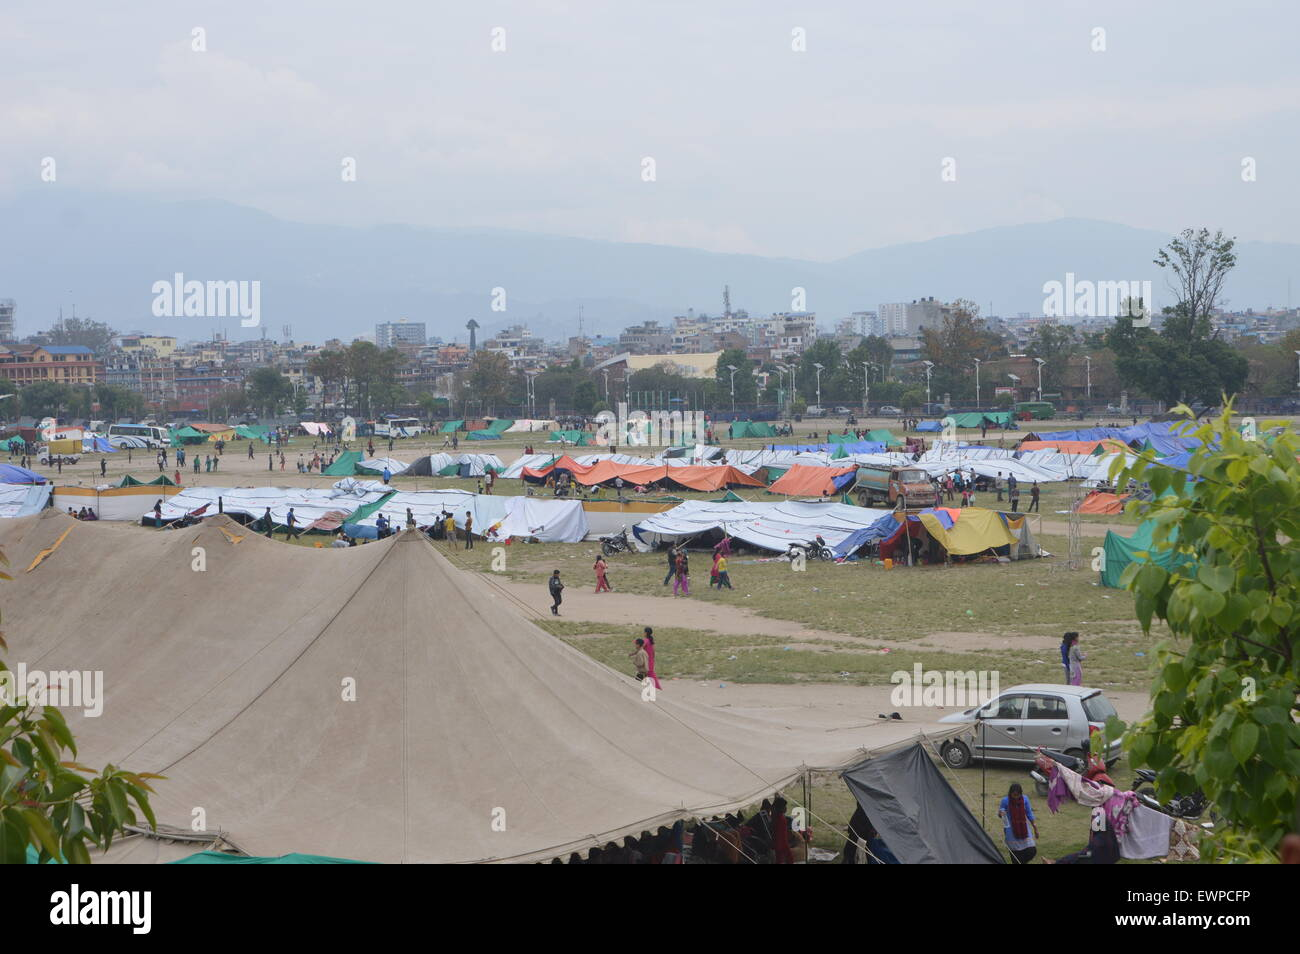 a8ab236af050e8 Survivors of the 7.9 magnitude earthquake that hit Kathmandu on 25 April  2015 living in tents made by the Nepal Army in various open ground field  locations.